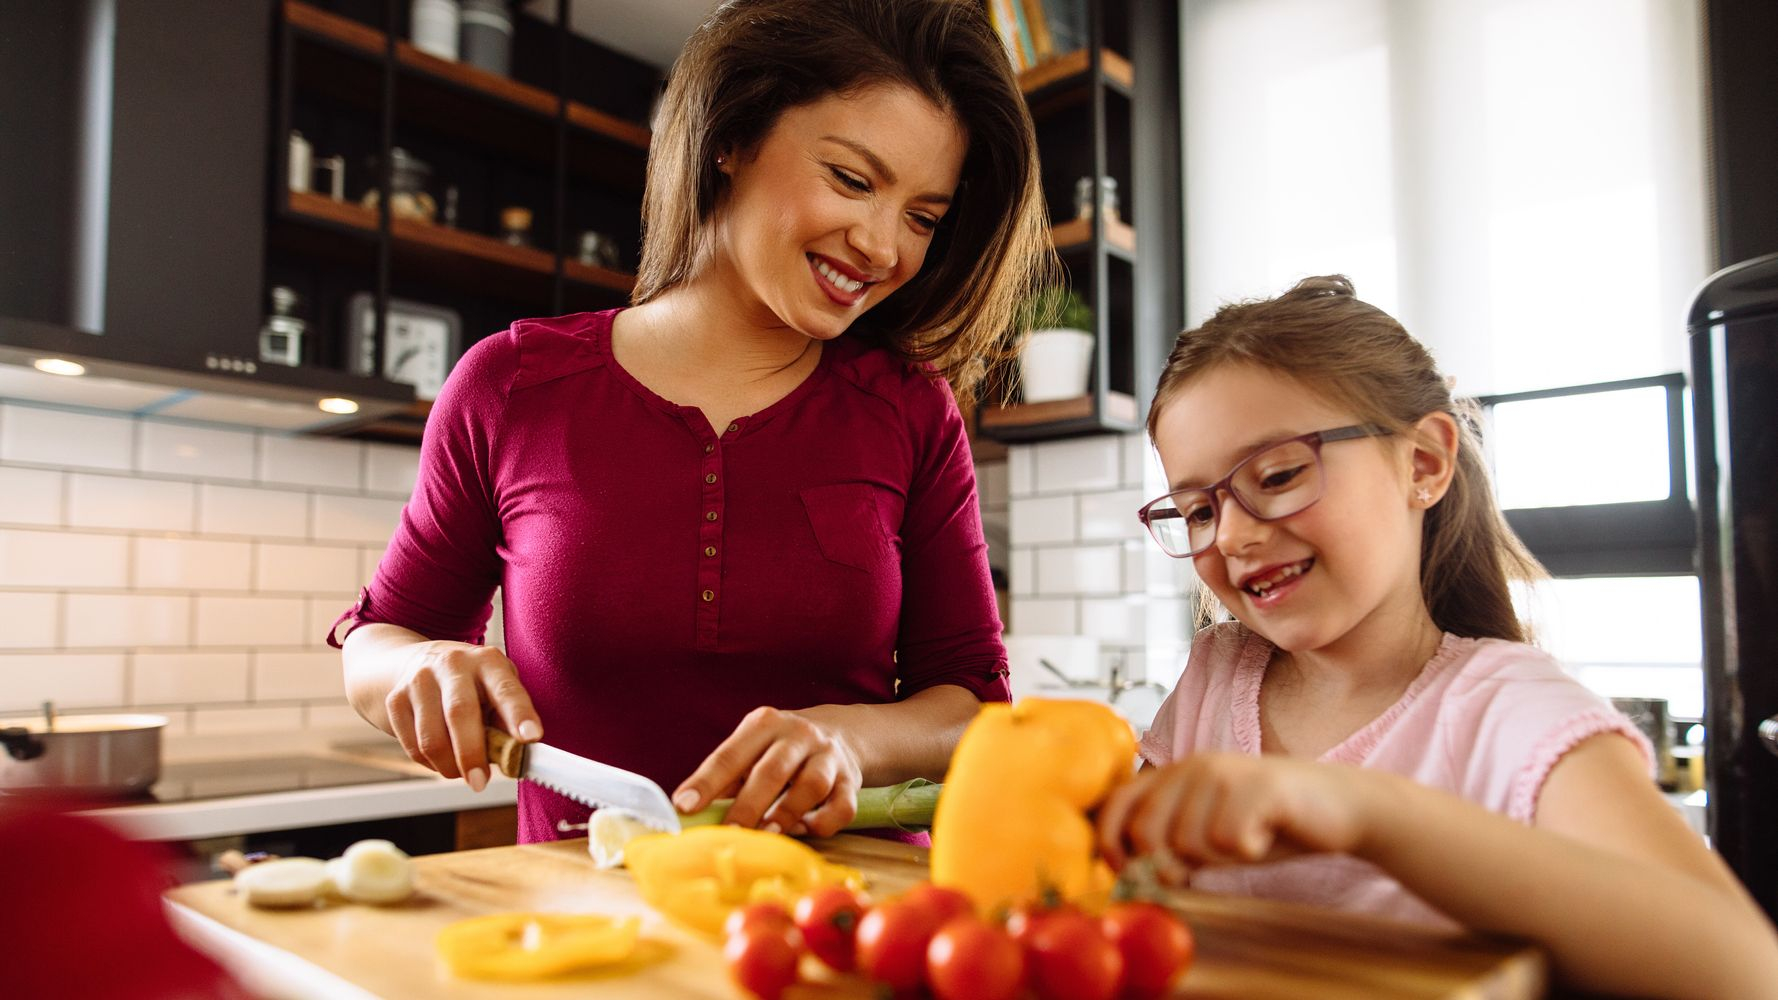 Genuinely Tasty Cooking Apps So The Kids Can Nail It In The Kitchen